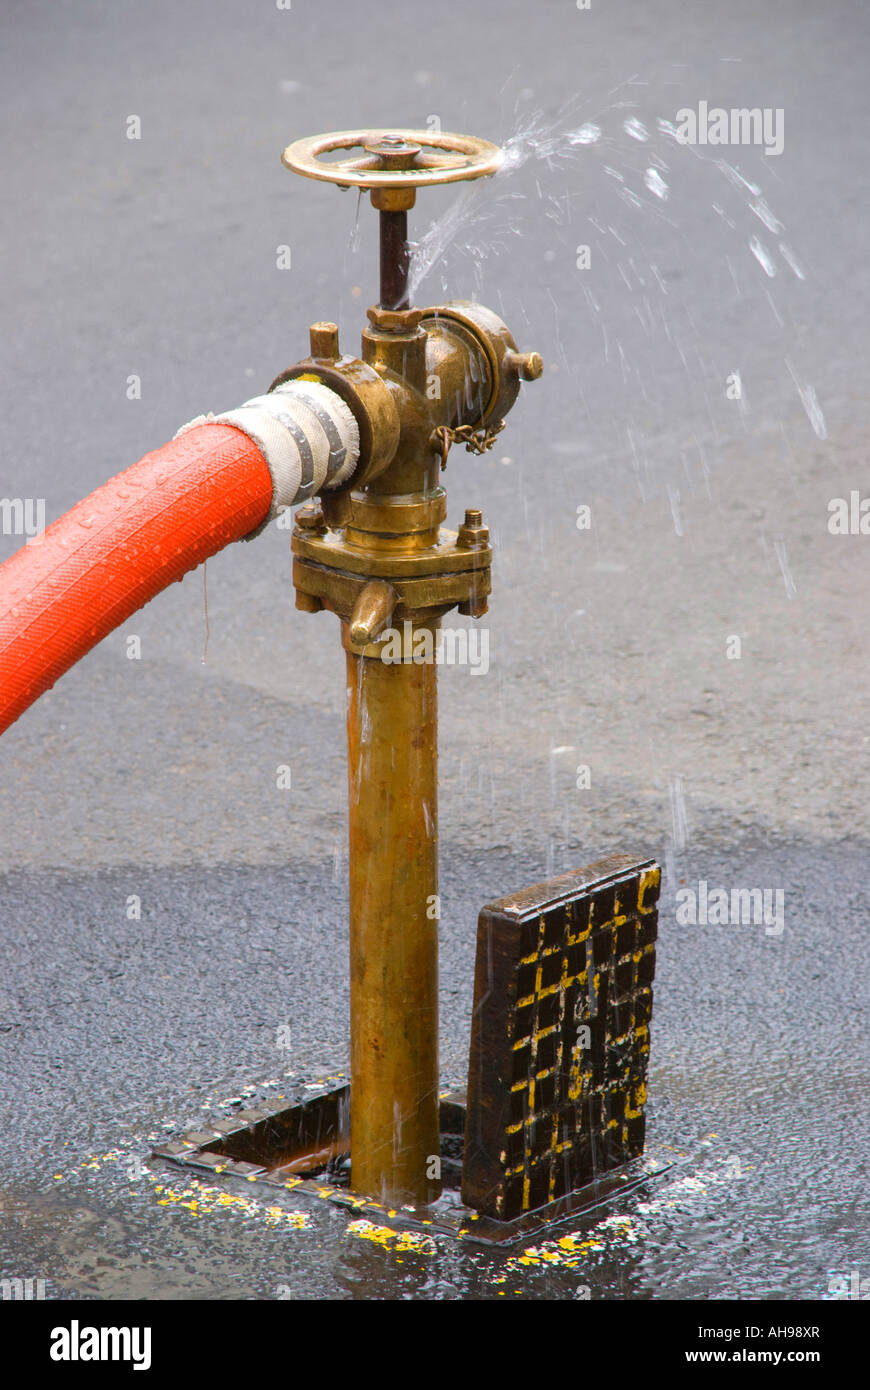 A fire hydrant in use - Stock Image